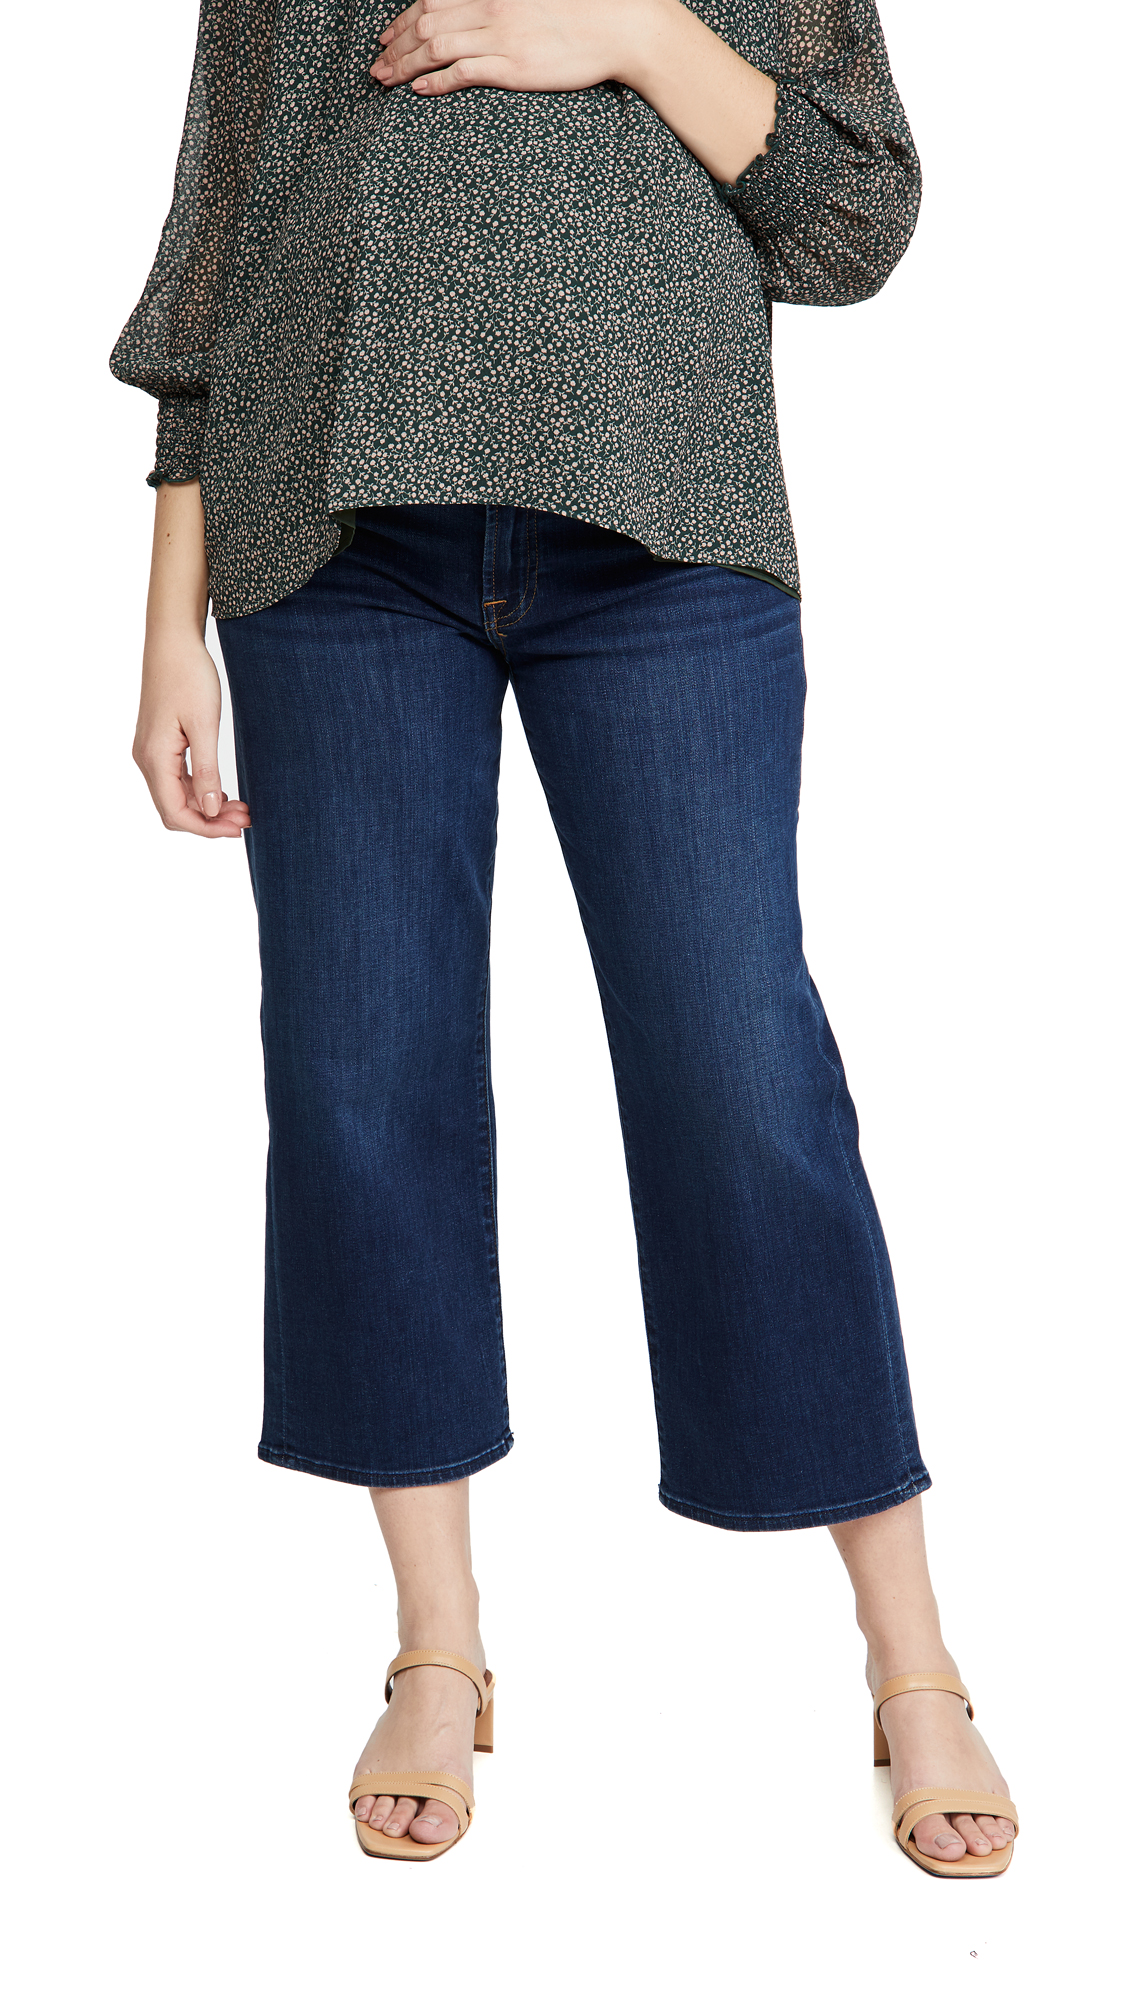 7 For All Mankind Maternity Cropped Alexa Jeans